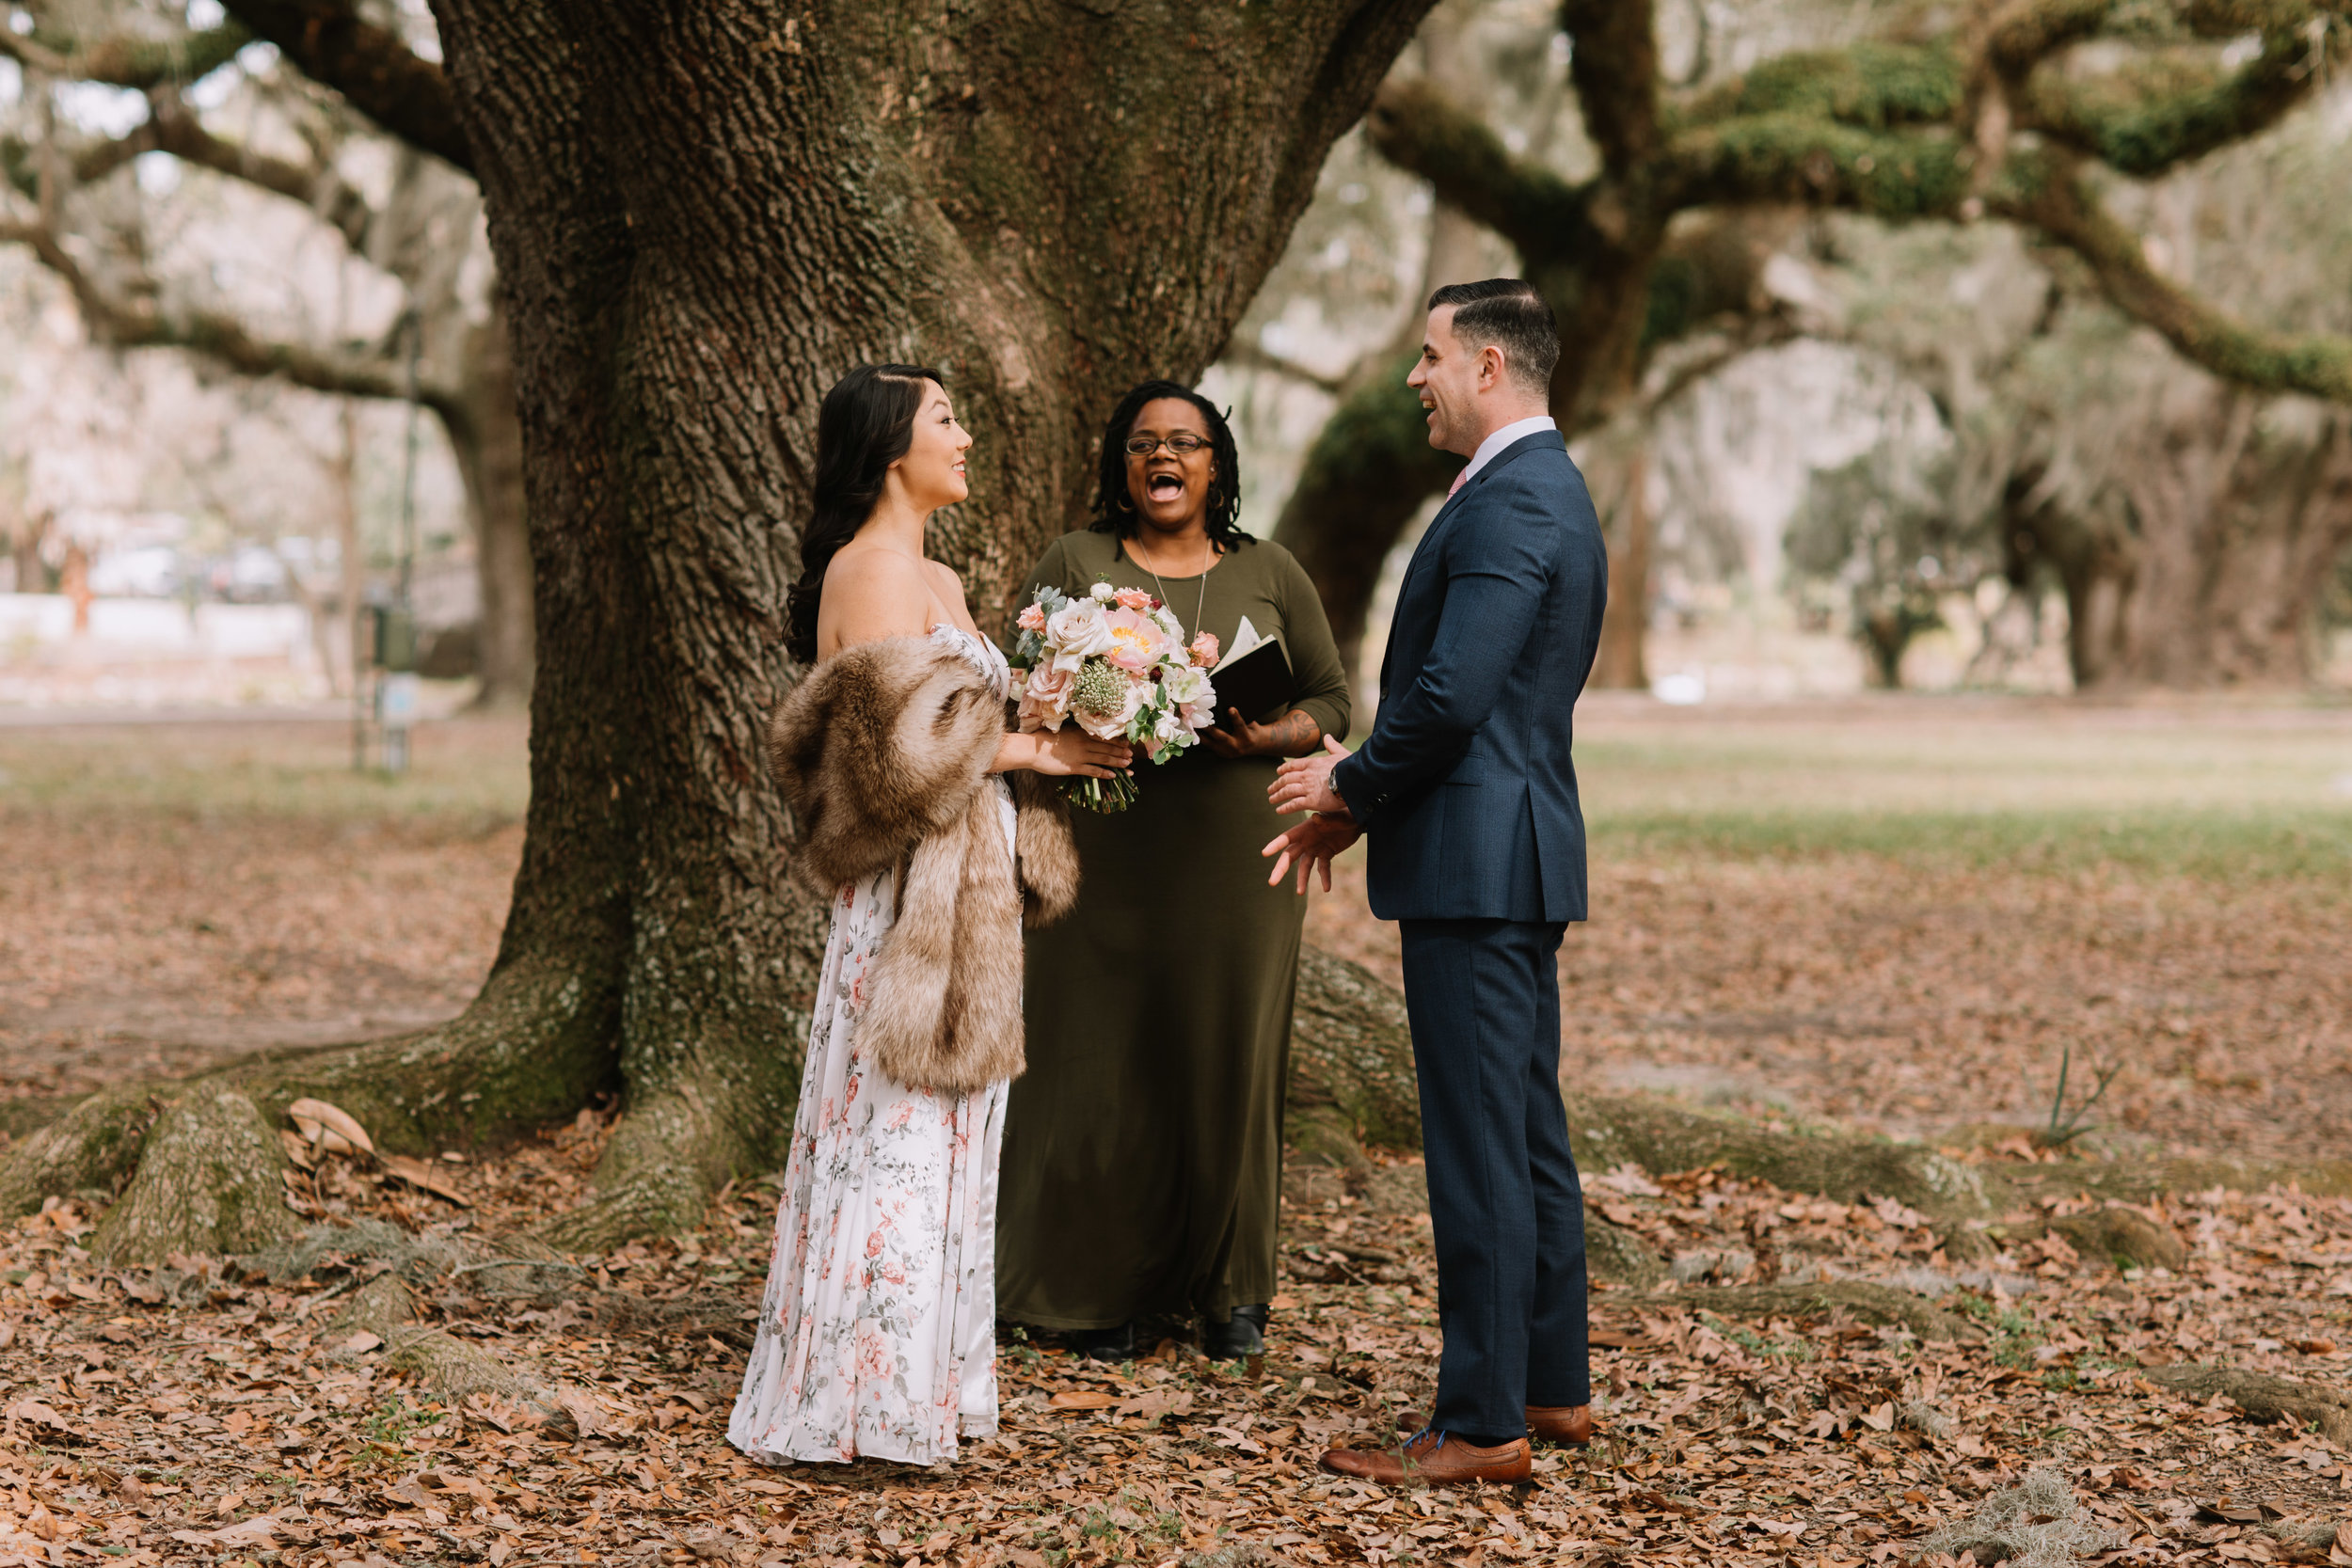 City Park Elopement New Orleans Wedding Photographer Ashley Biltz Photography2.jpg